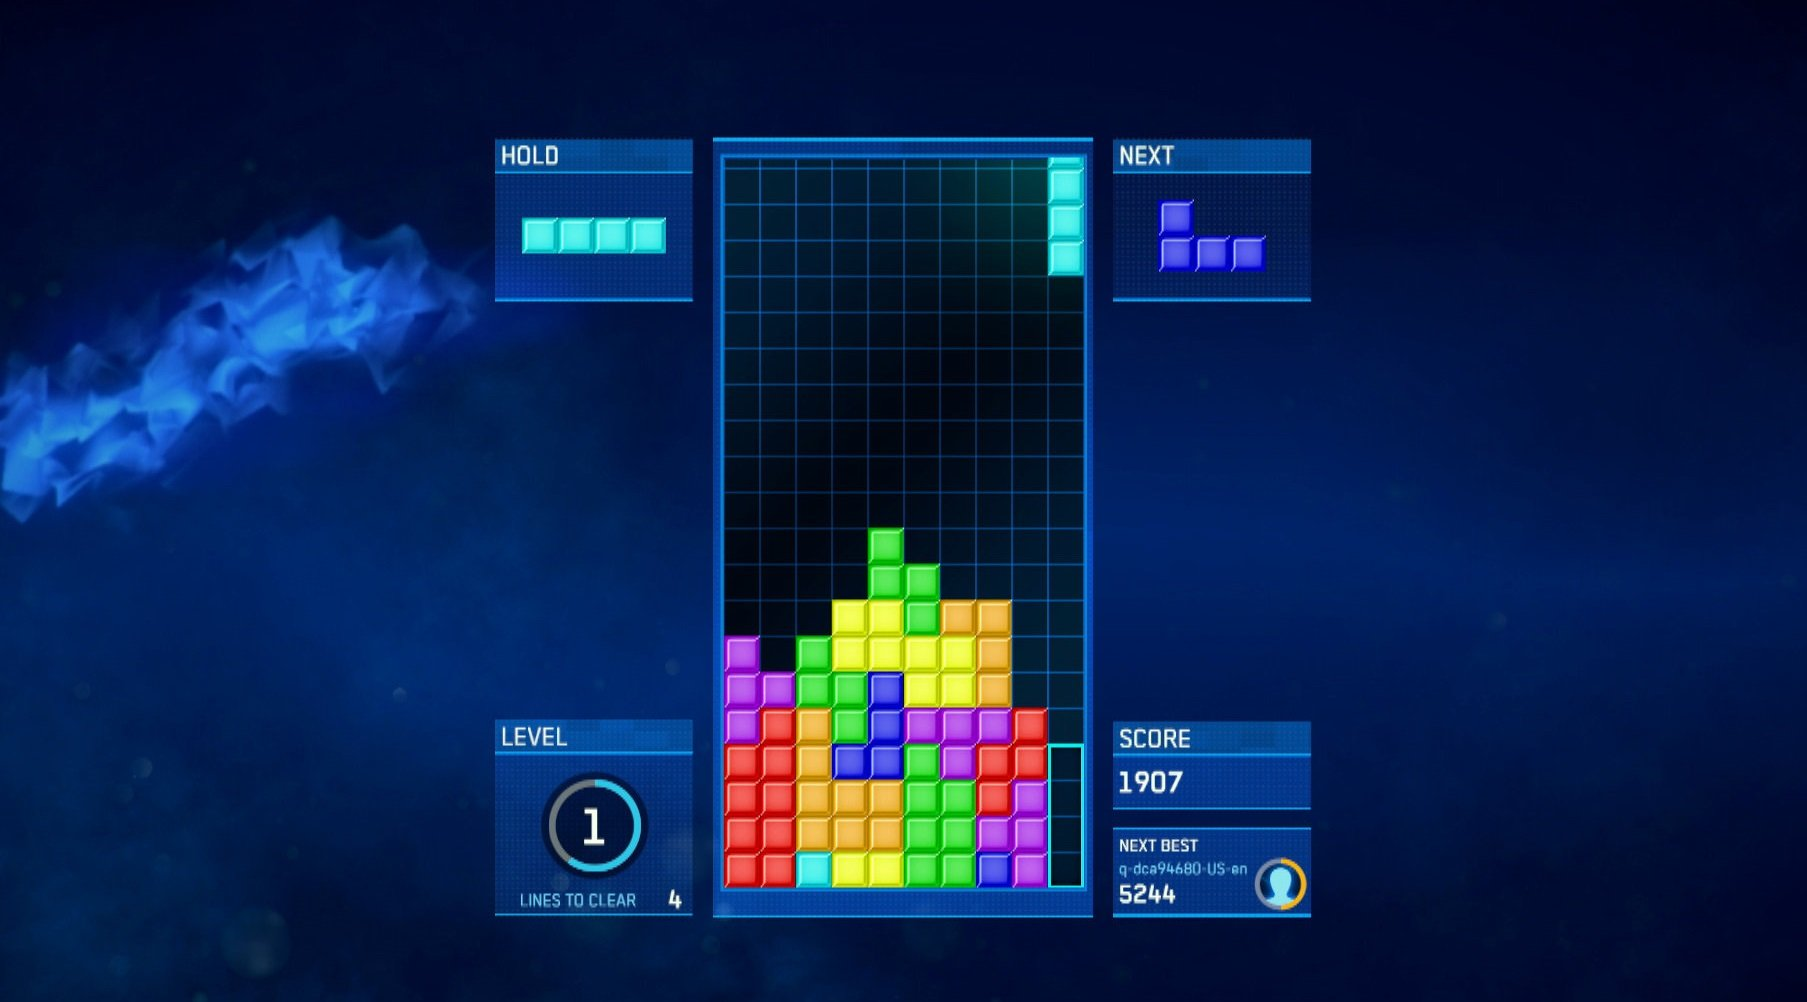 Tetris - New Ways to Challenge Yourself and Test Your Skills